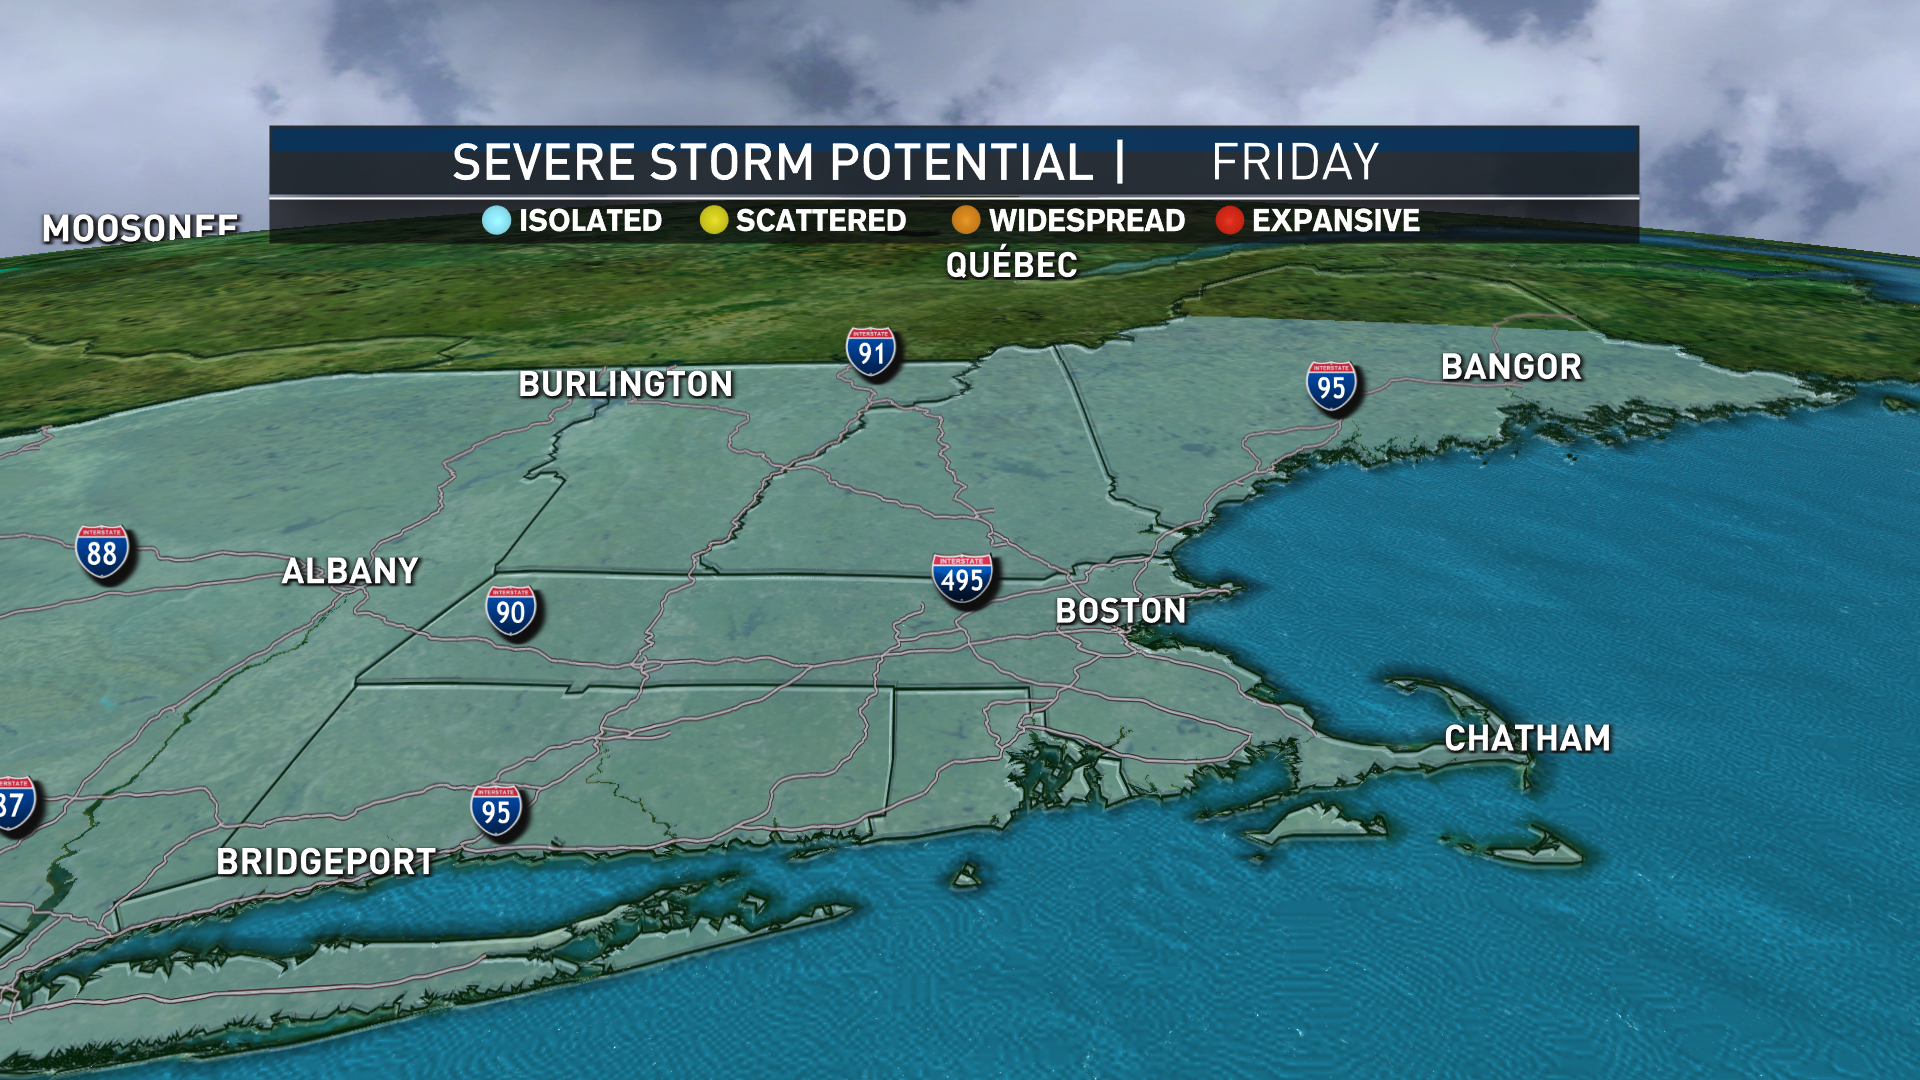 Today's Thunderstorm Potential